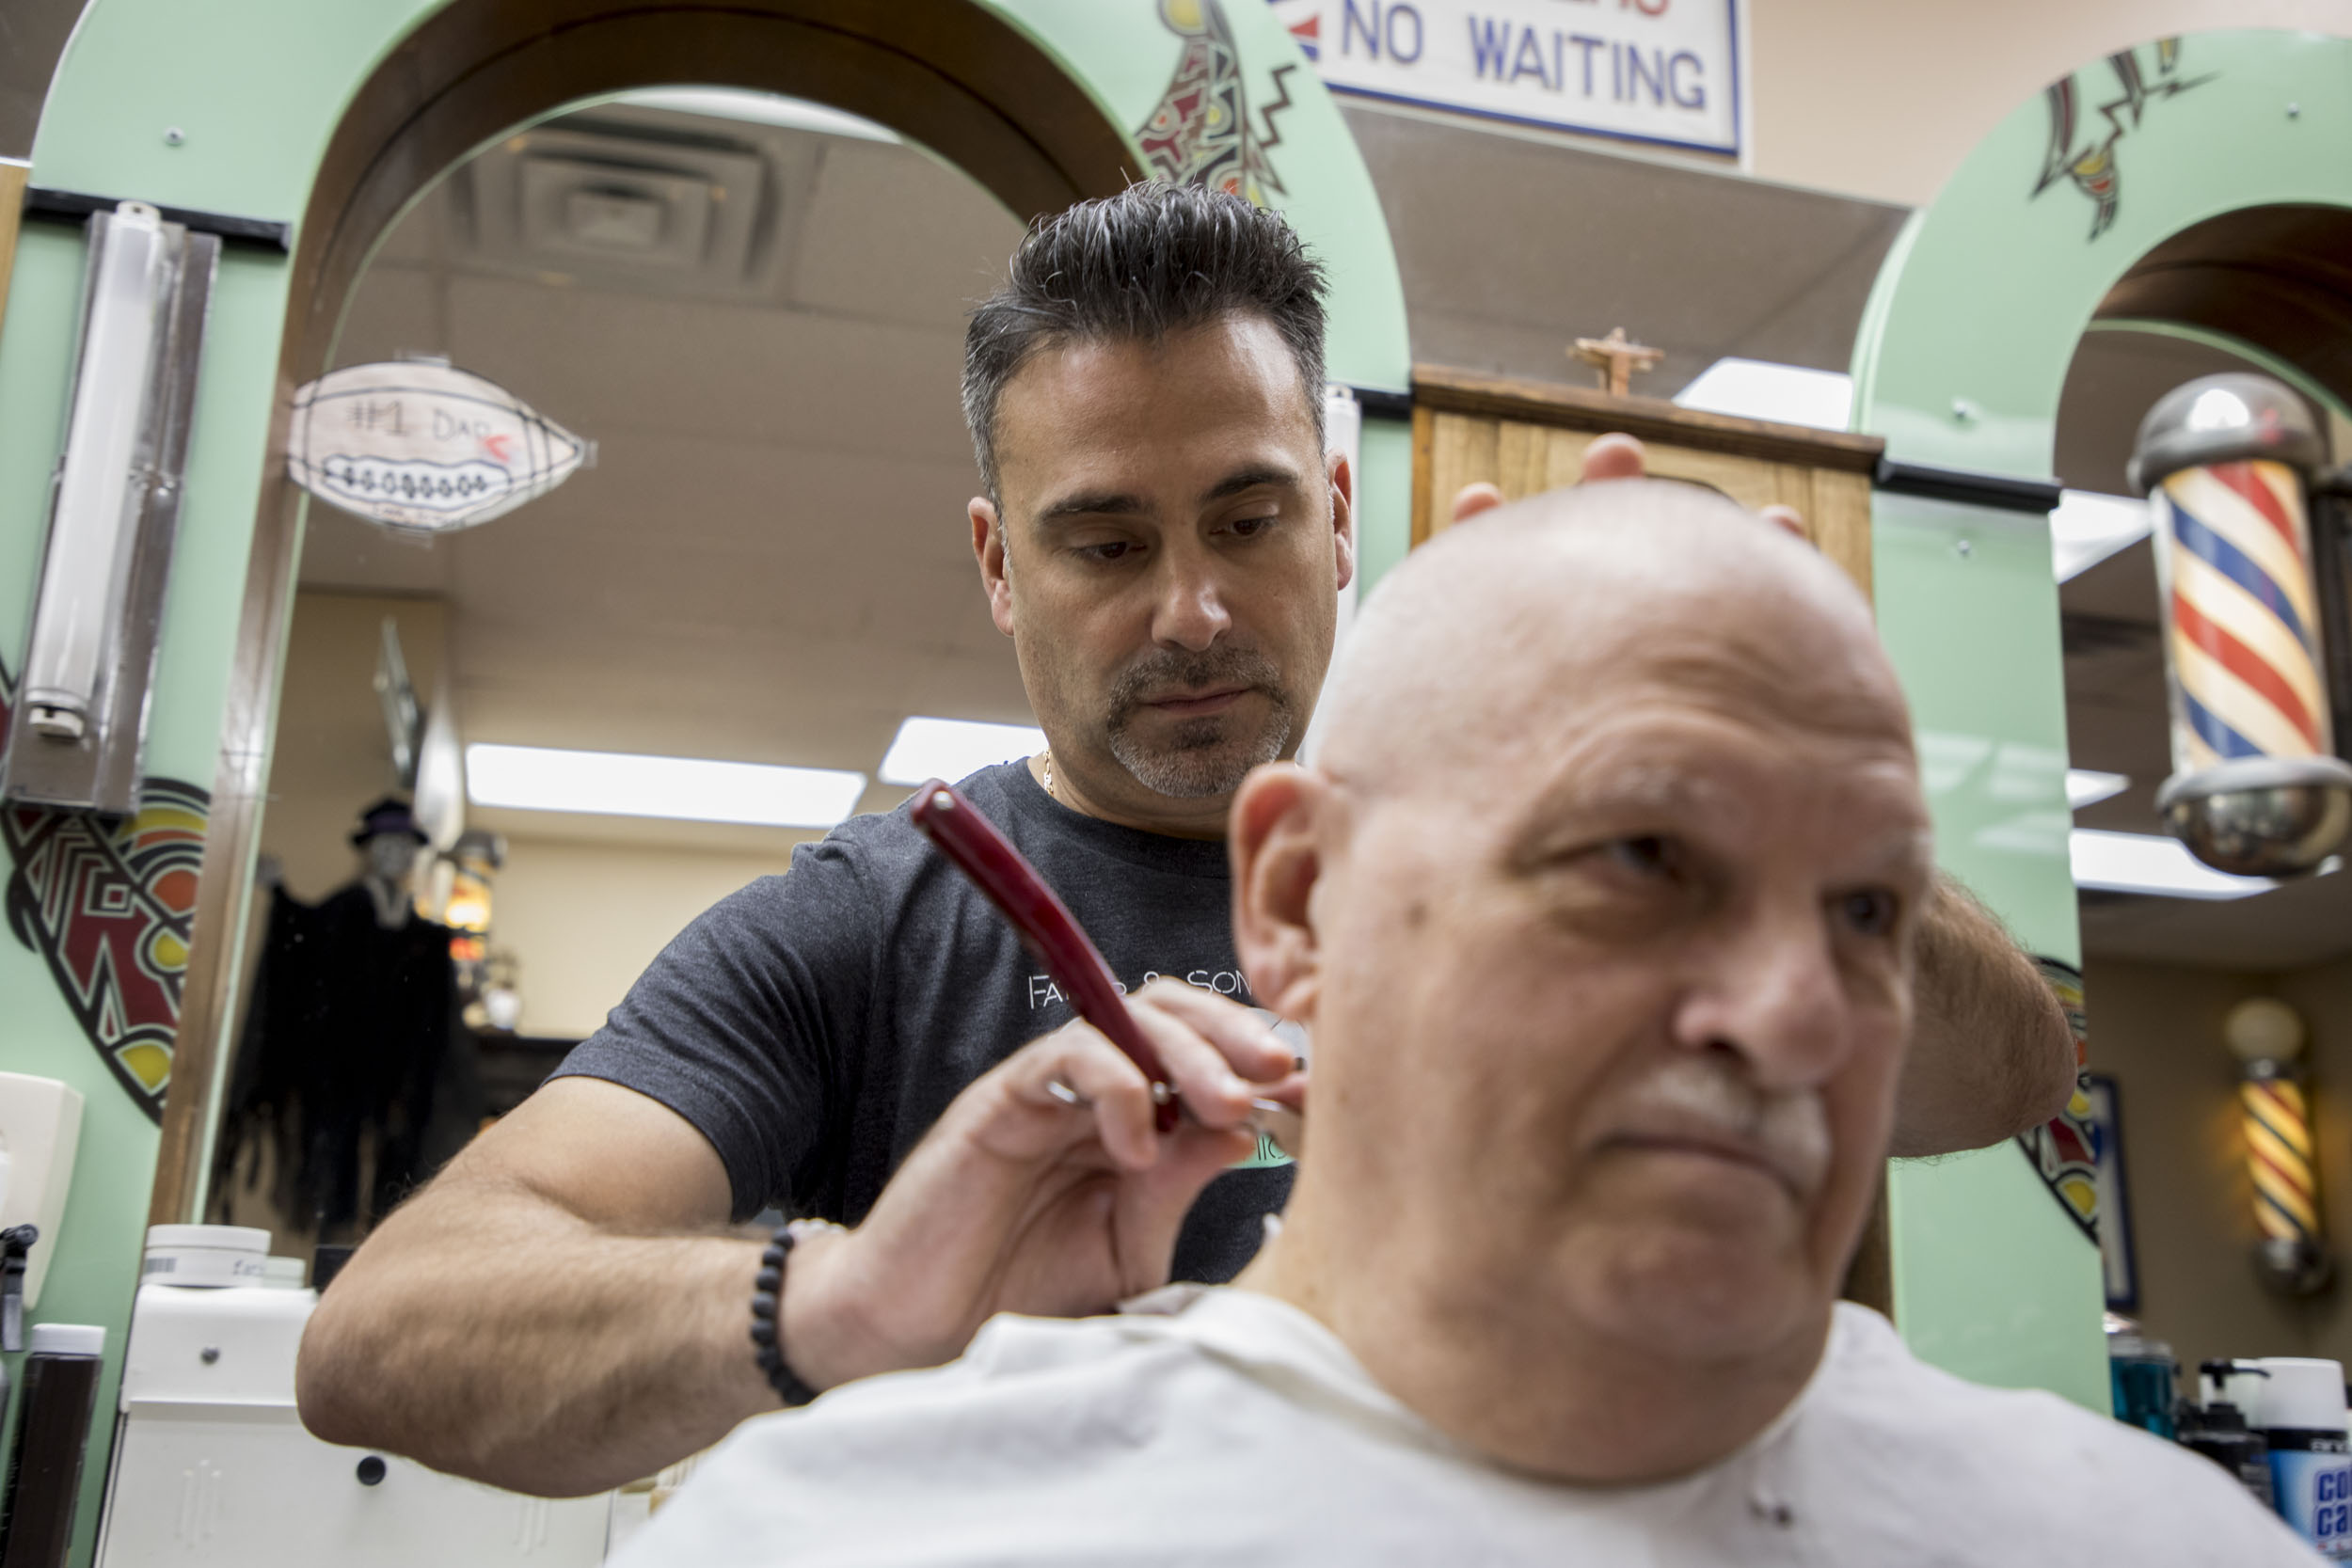 Father and Son co-owner Pete Faraci uses a straight razor to finish a haircut. (Andrew Gill/WBEZ)